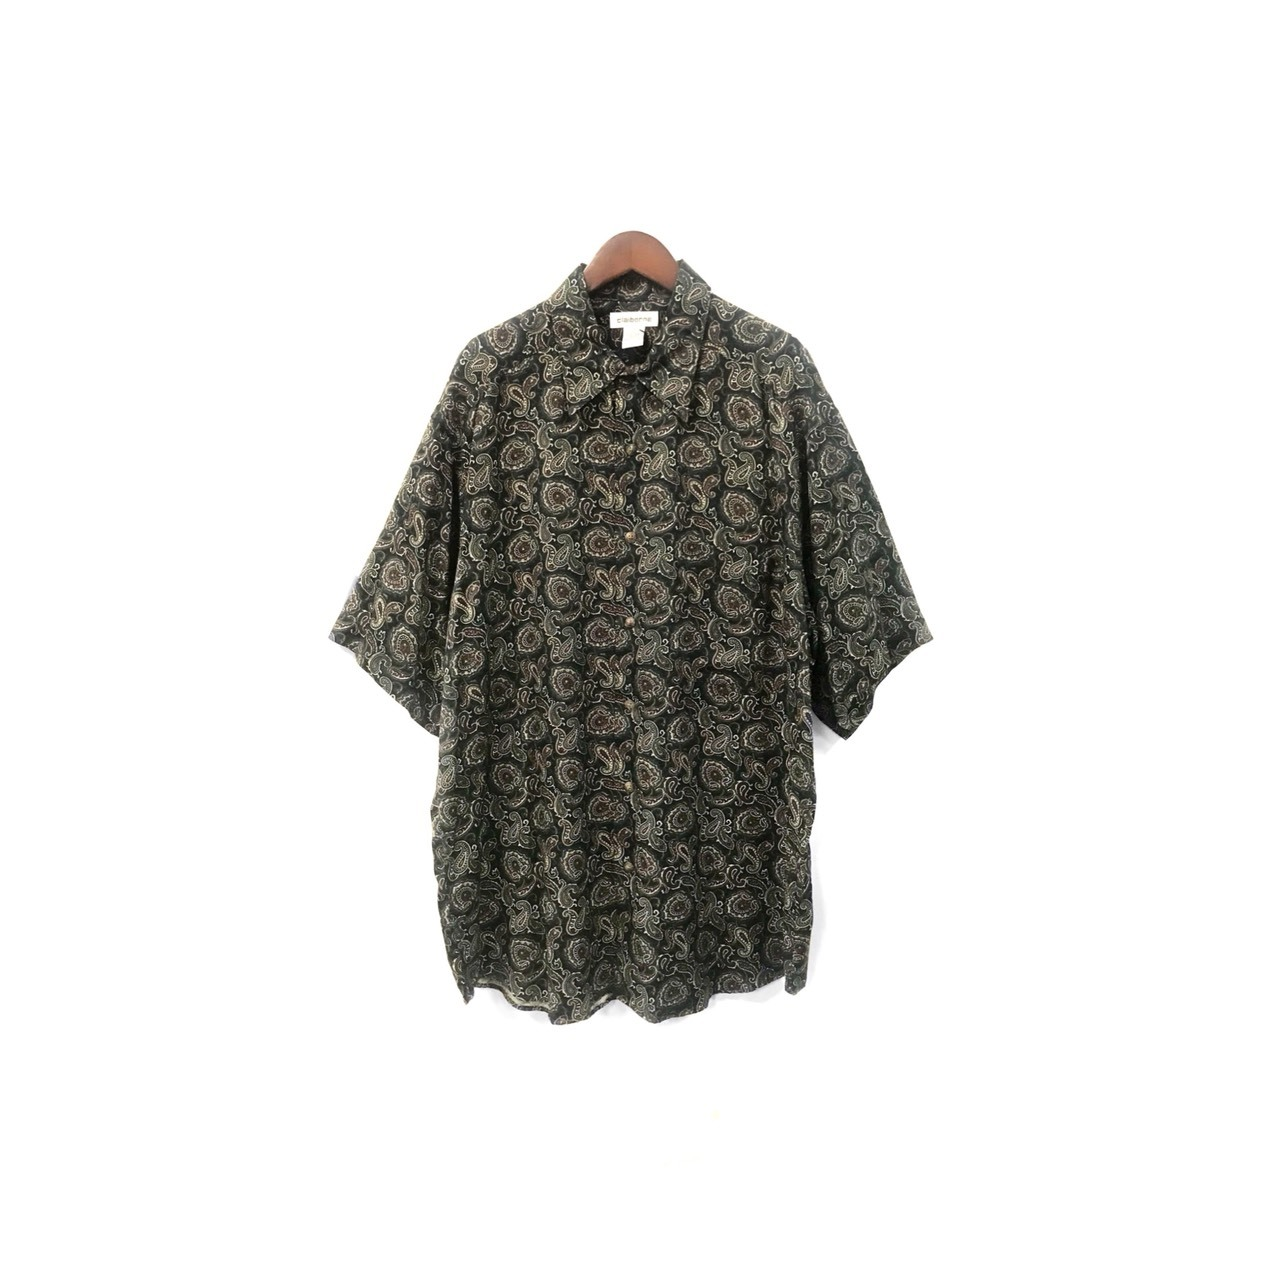 USED - Paisley Rayon Shirt ¥9000+tax → ¥7200+tax